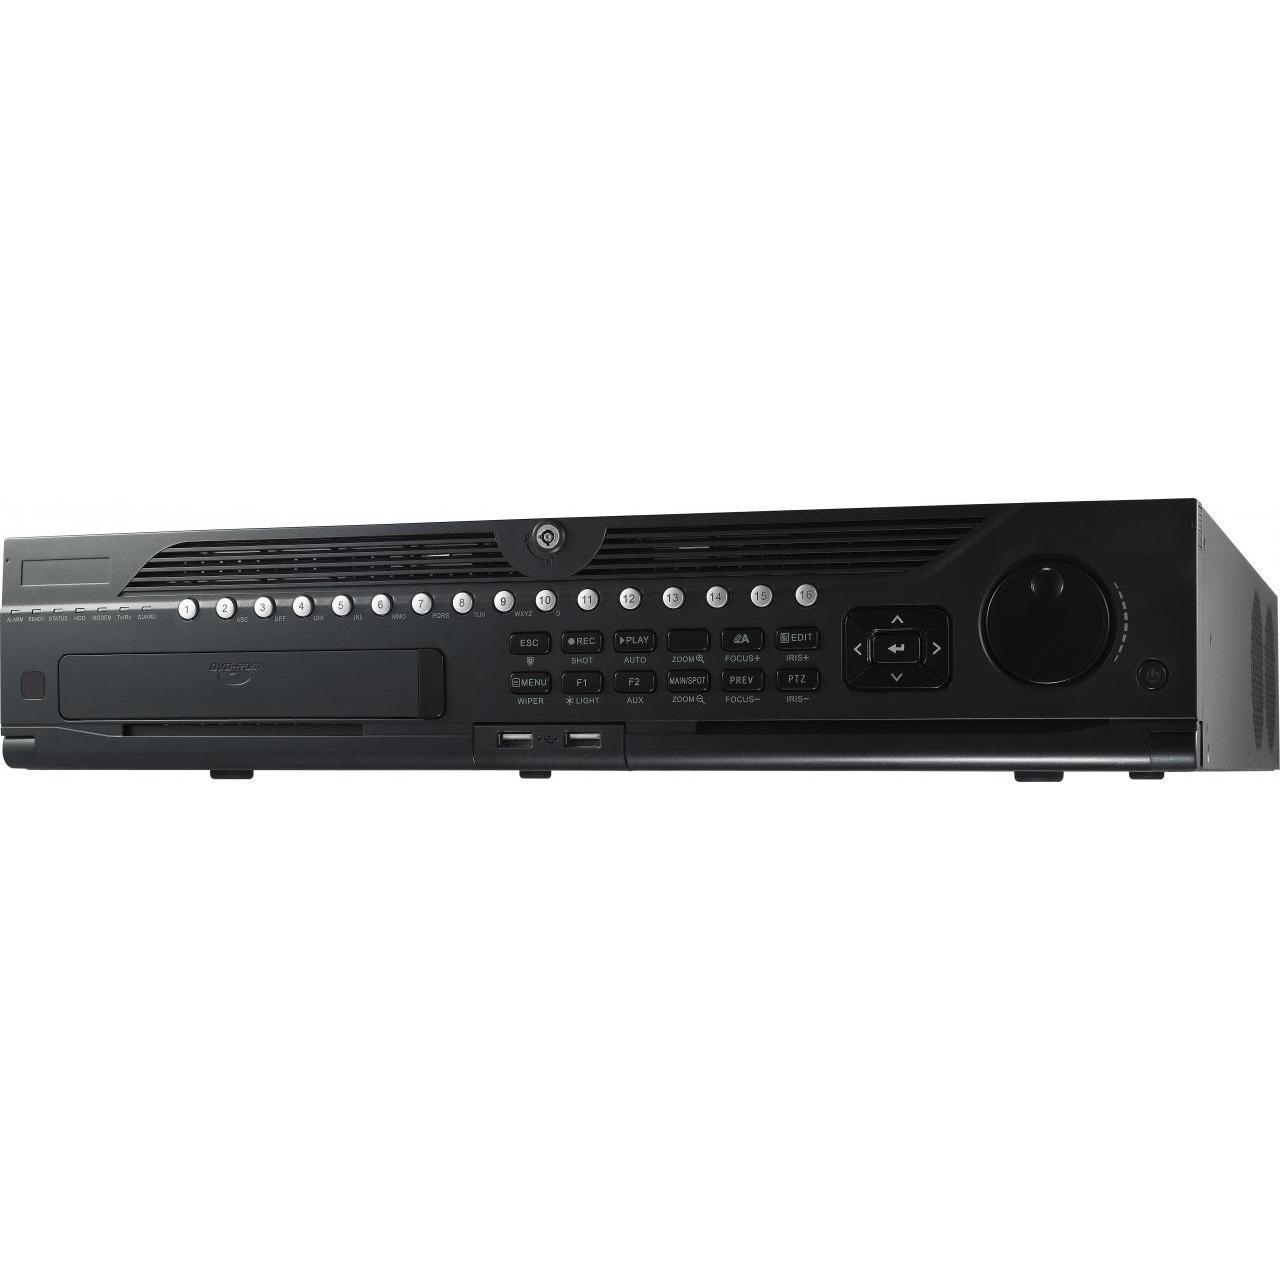 64CH 12MP 9600 Series NVR with Dual Gb